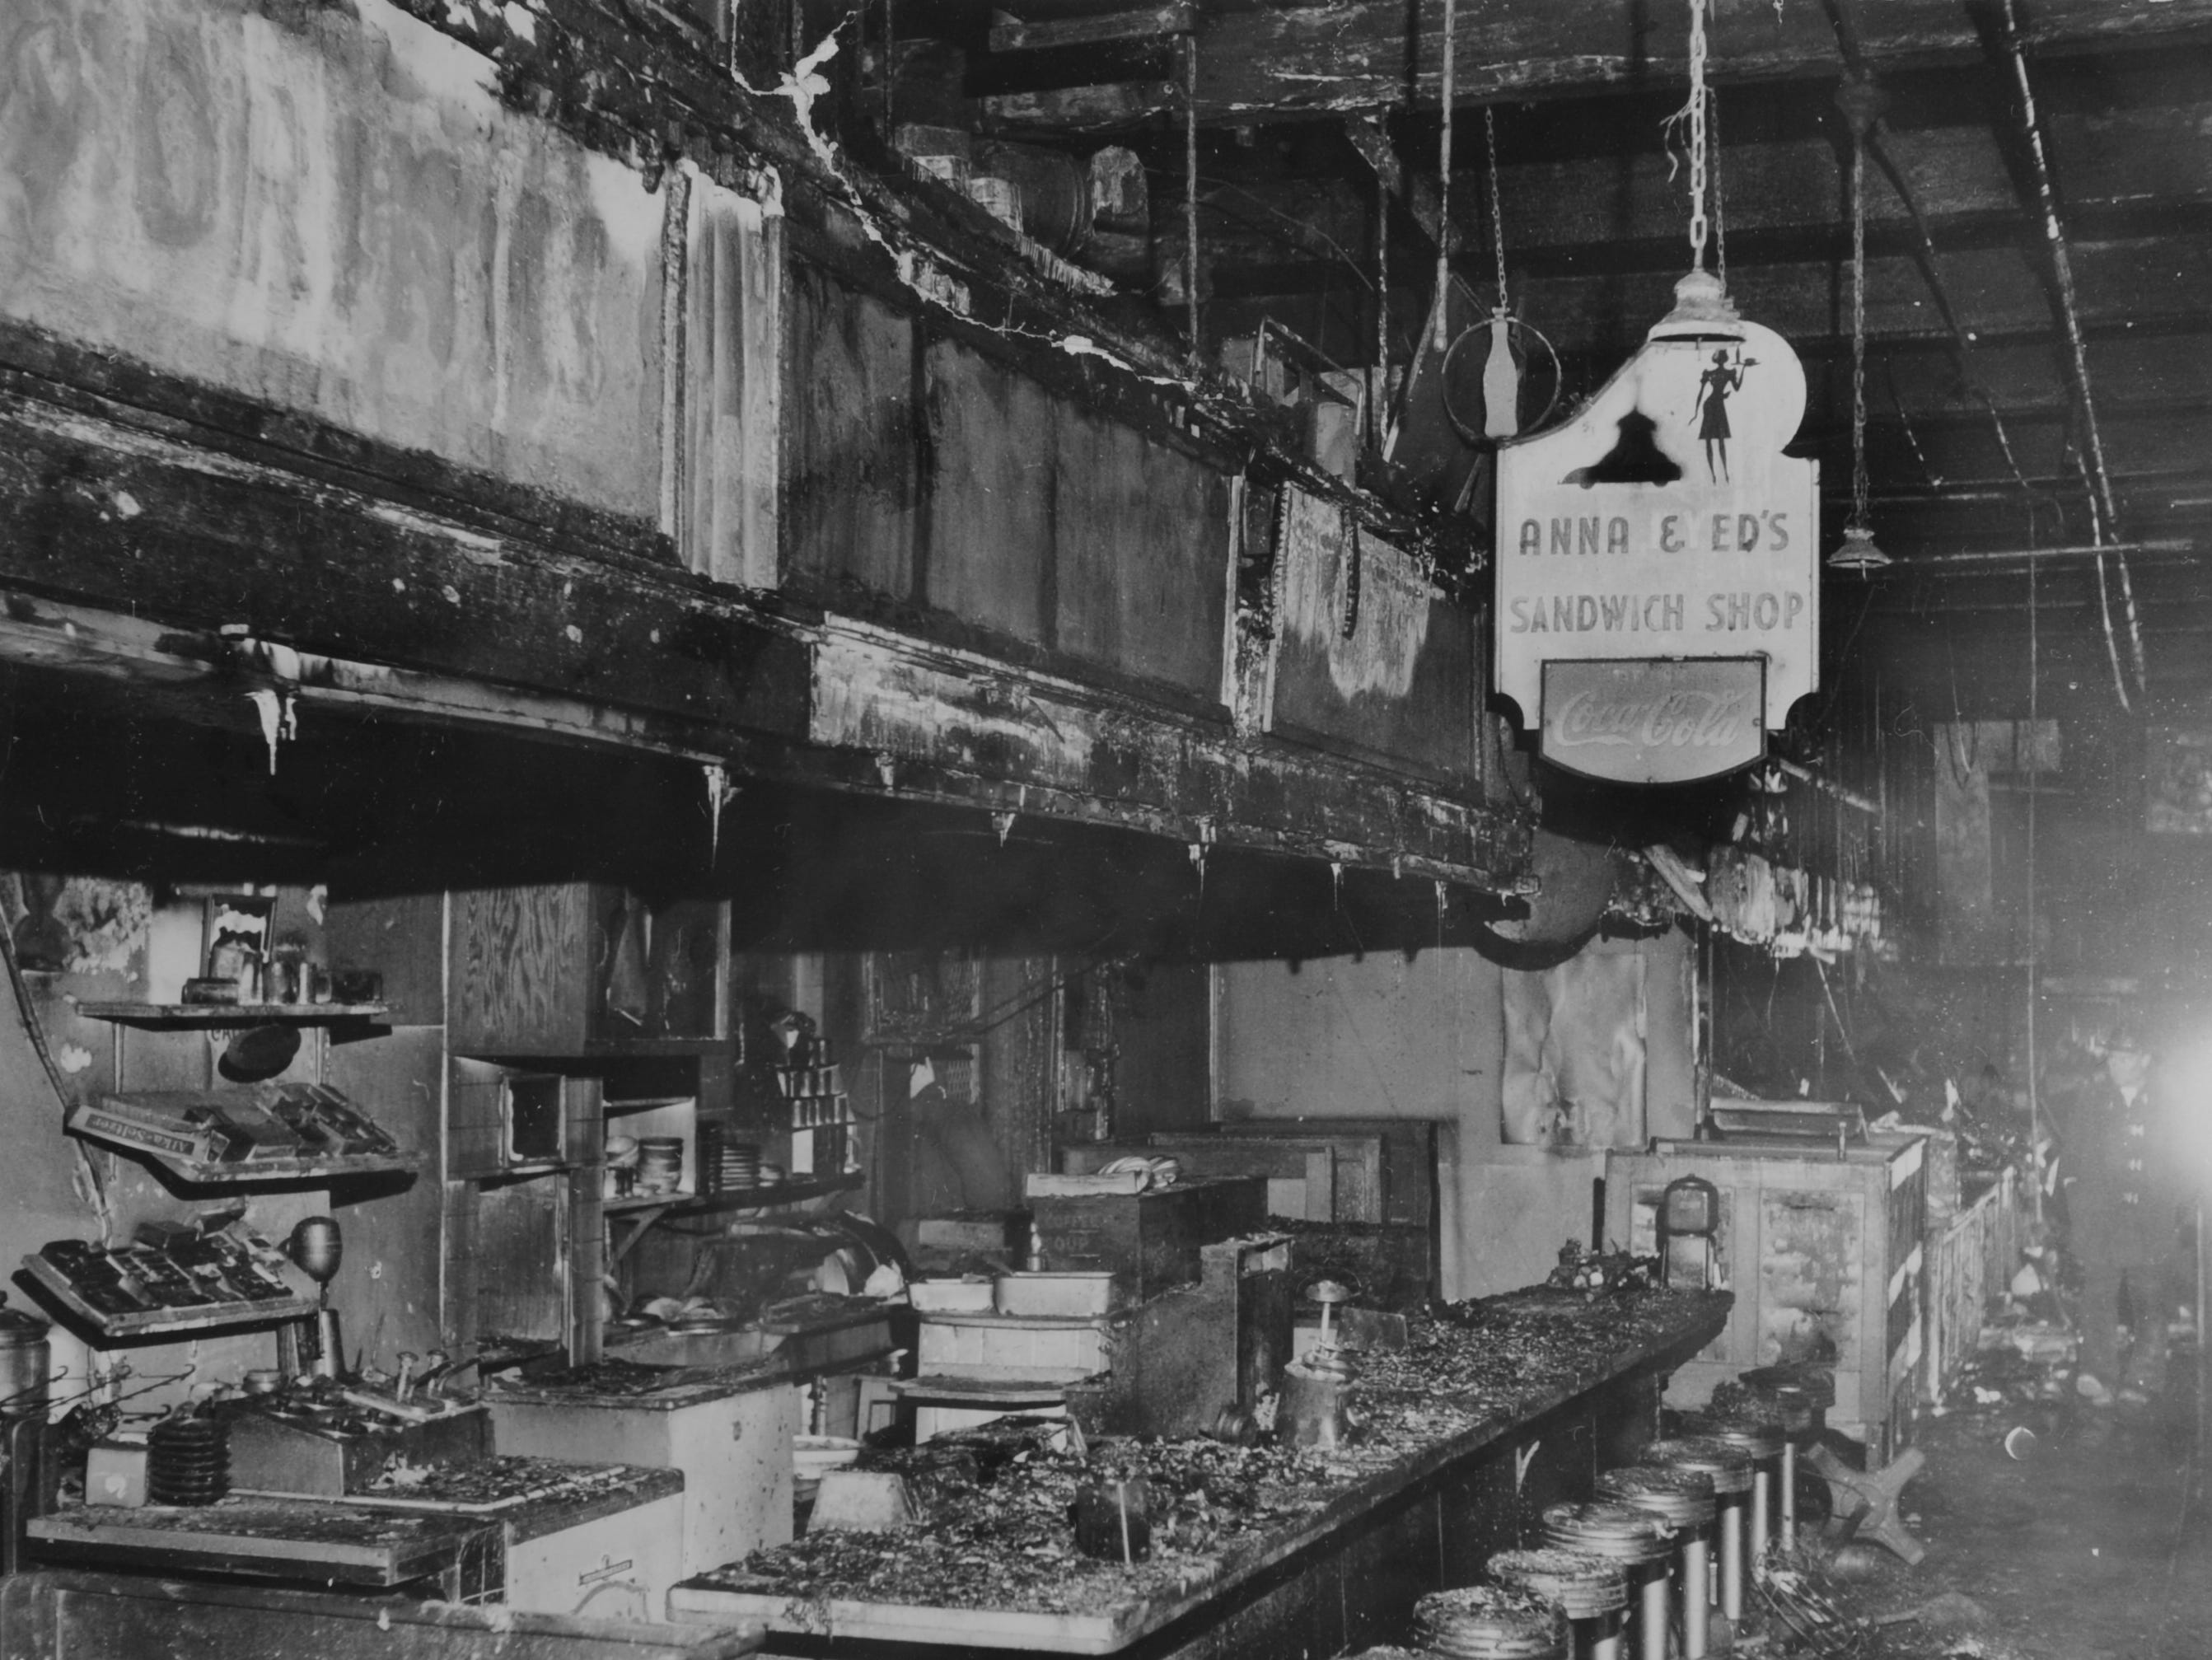 In a Dec. 7, 1959 photograph, Anna & Ed's Sandwich Shop in the Market House is seen after being gutted by fire.